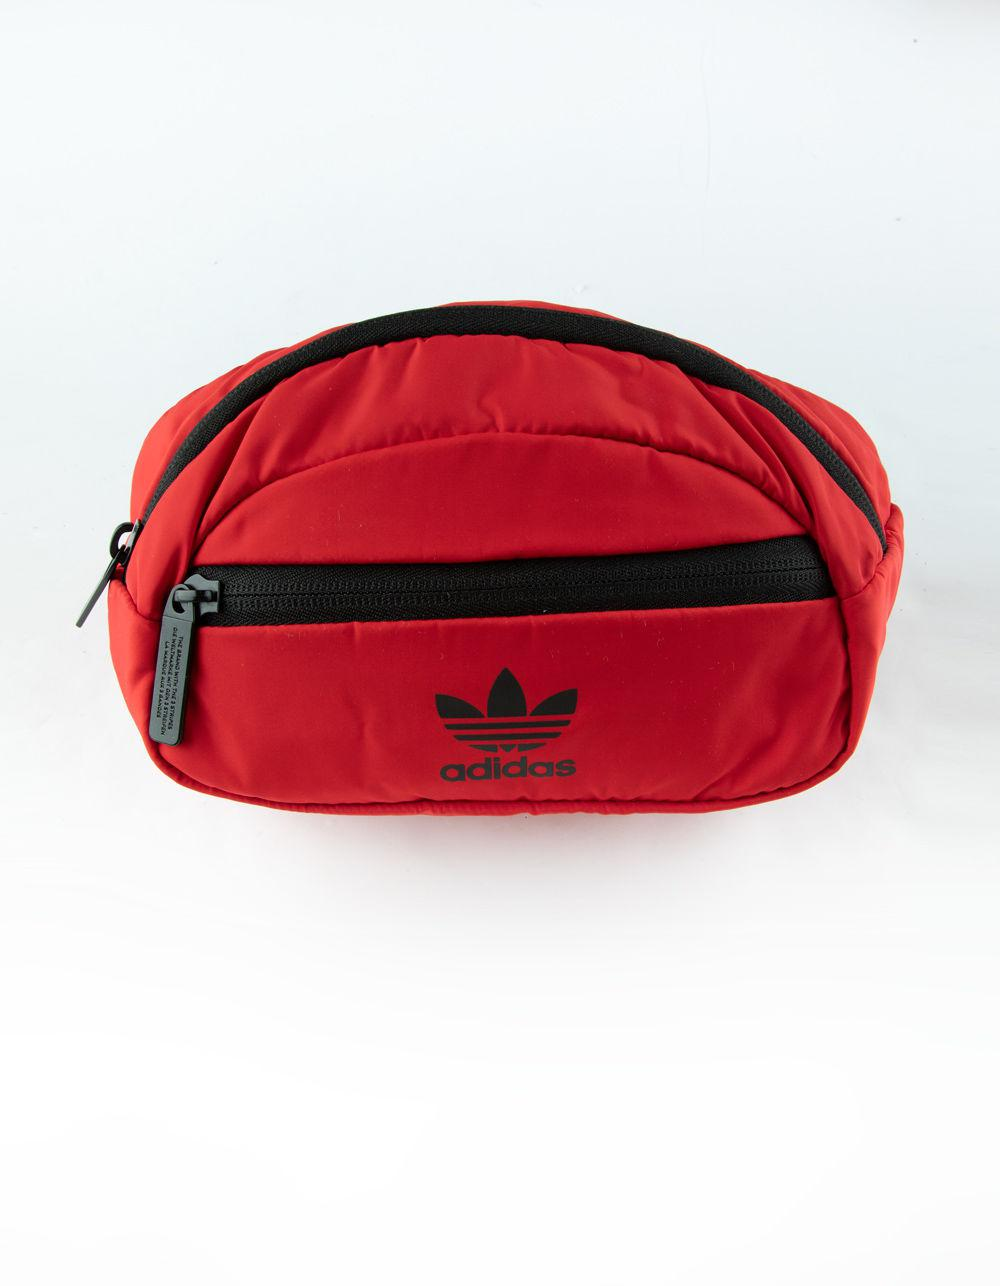 6ebf8b6fc866 Lyst - adidas Originals National Red Fanny Pack in Red for Men